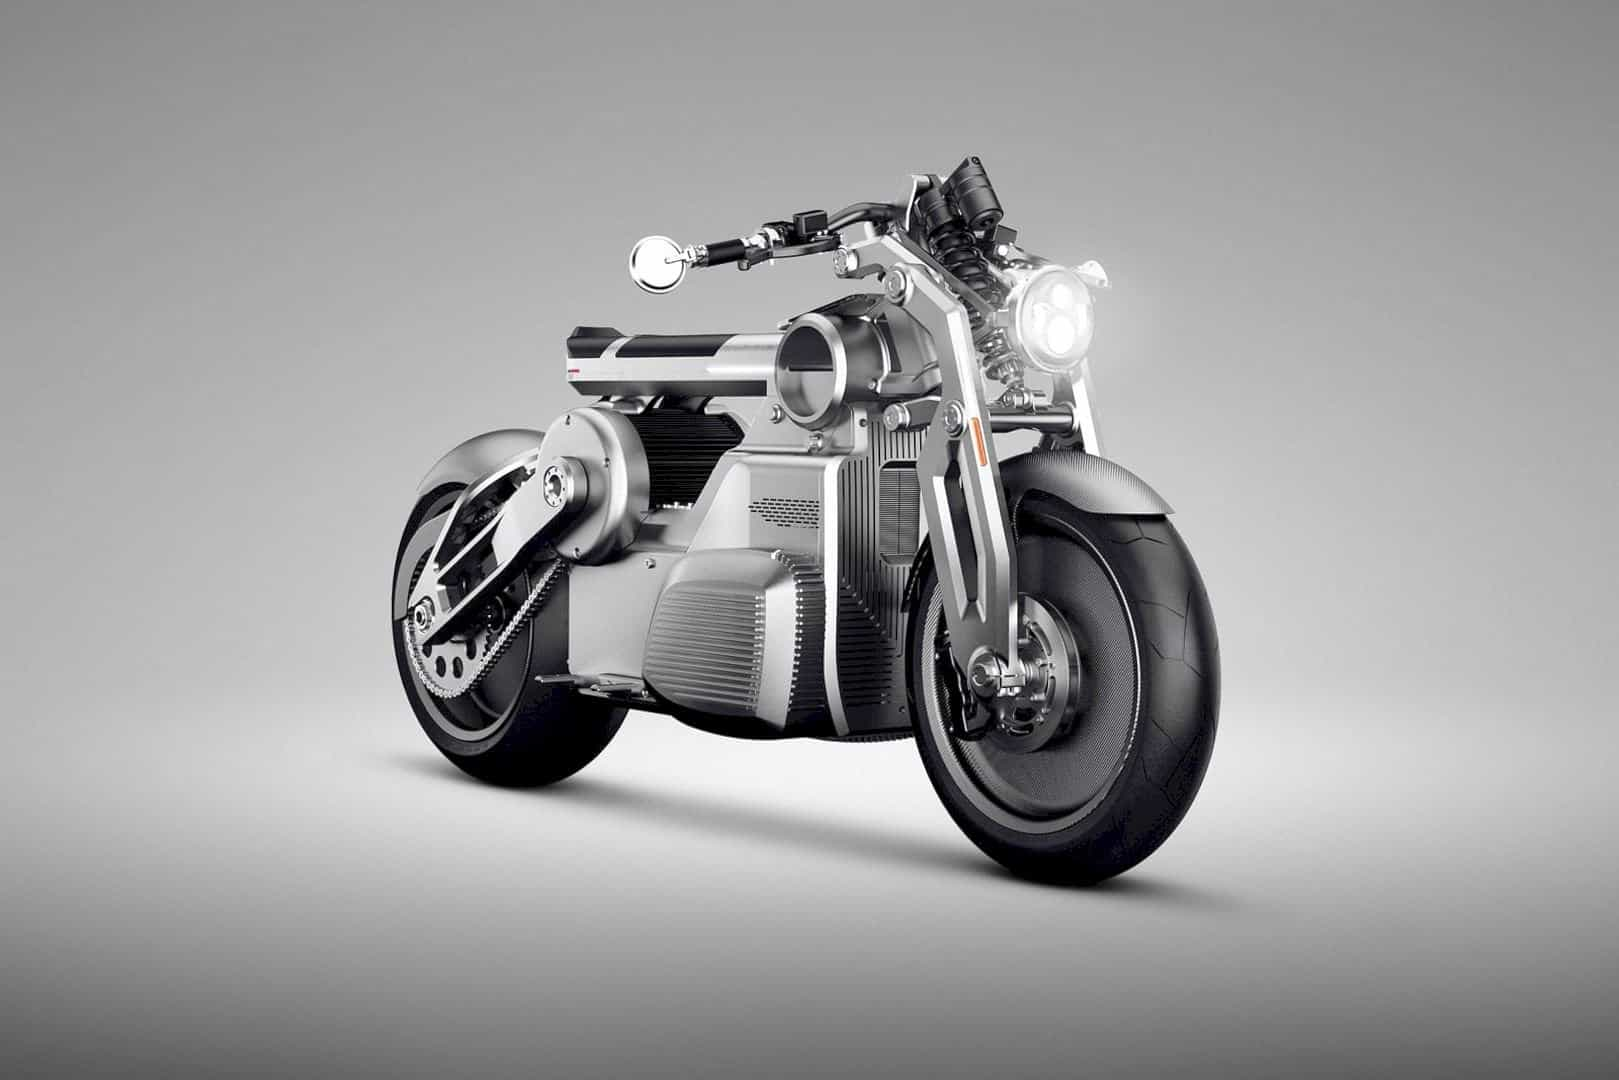 Zeus by Curtiss Motorcycle: The All-Electric Beast